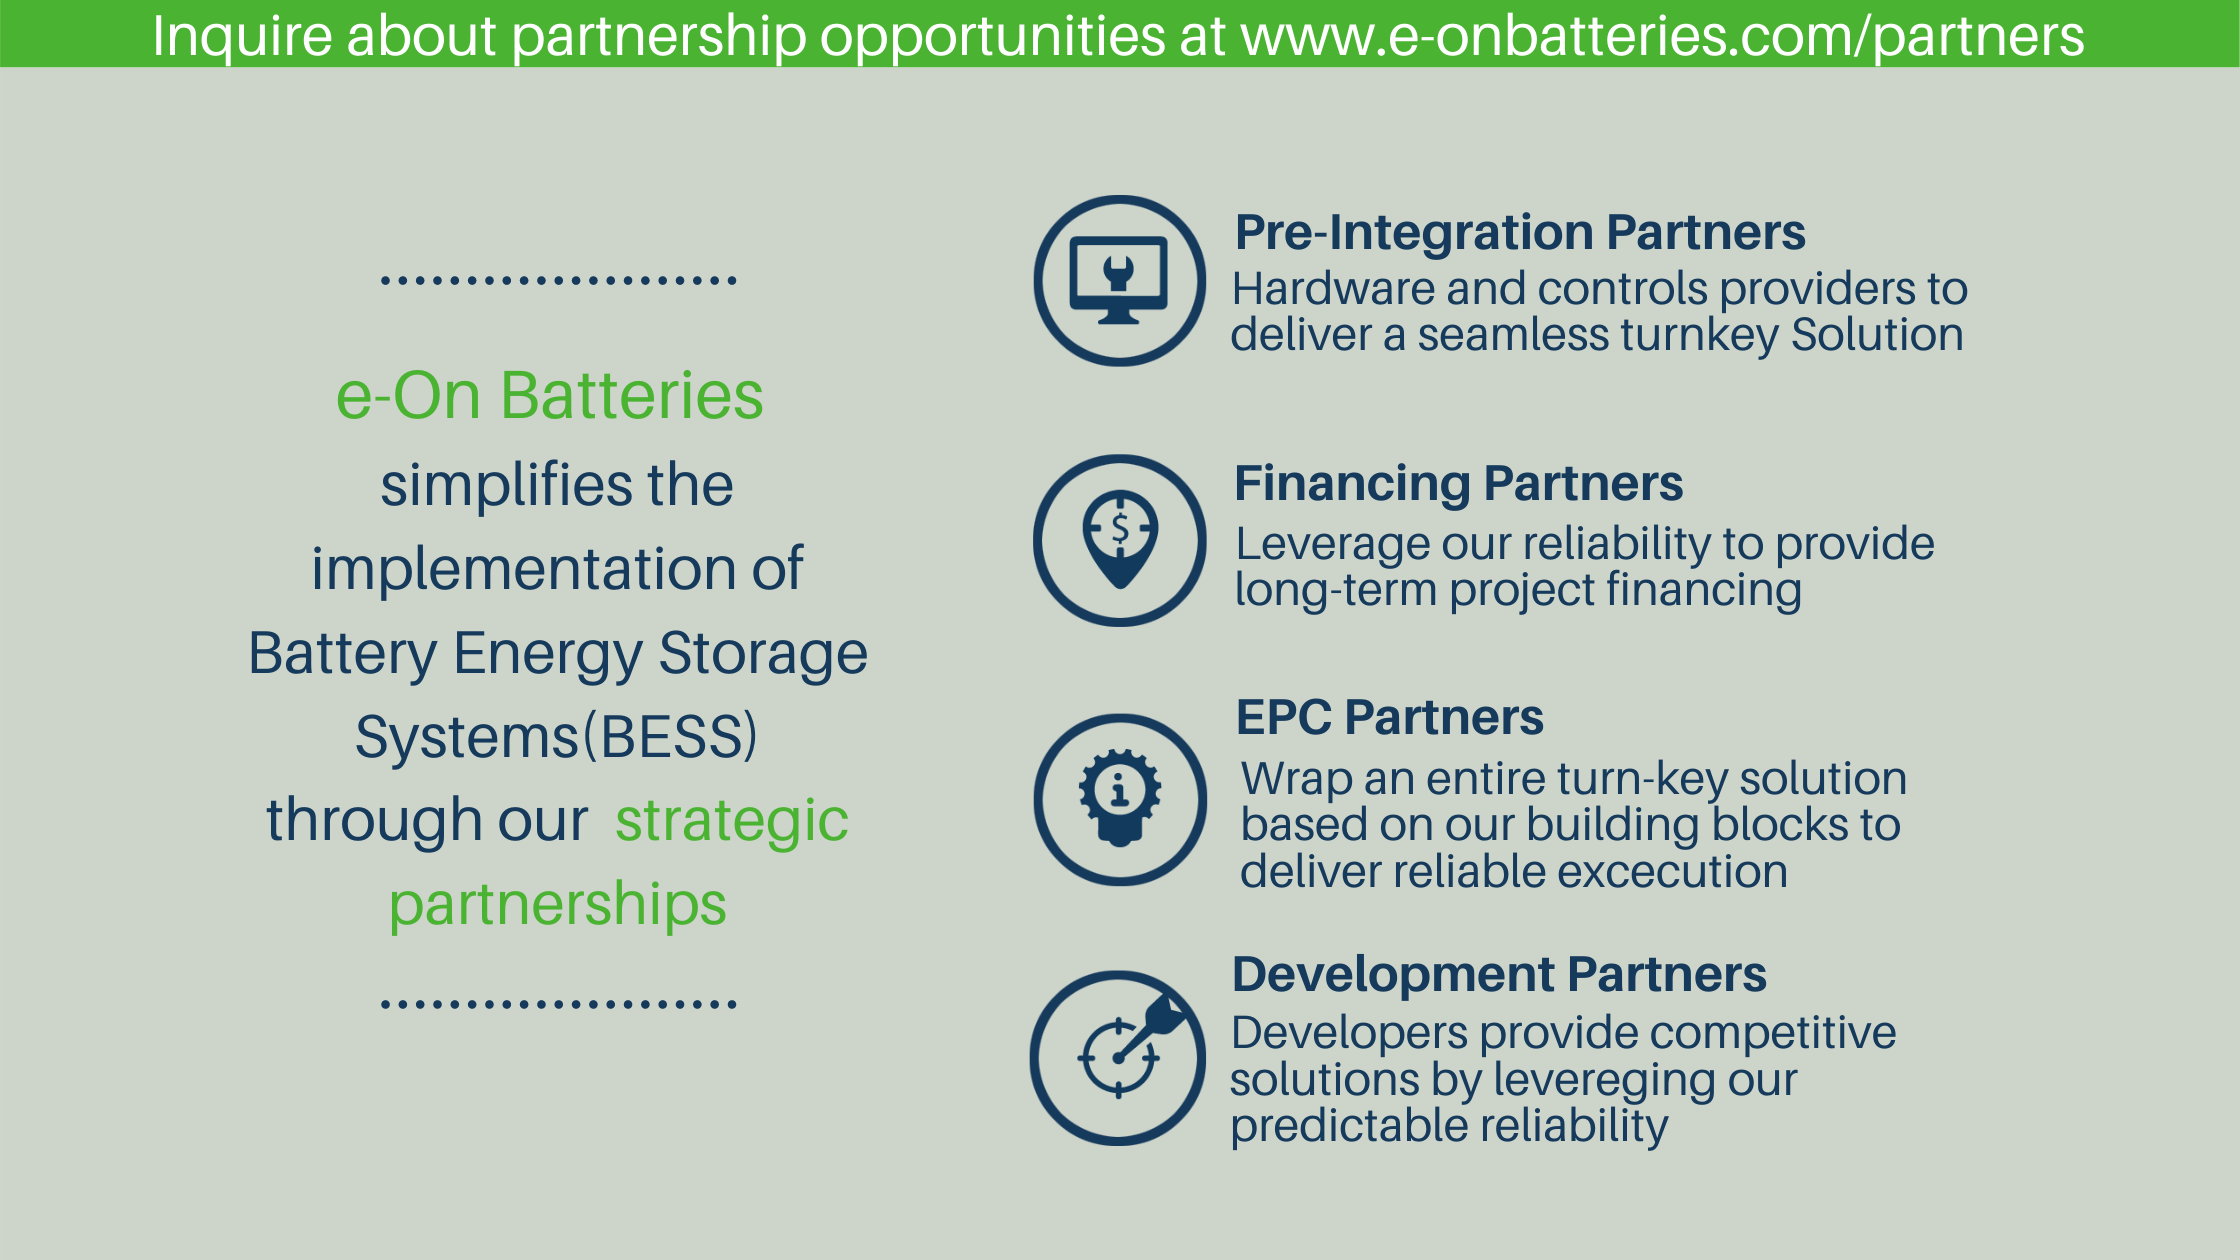 Turn-key partners for Battery Energy Storage Systems